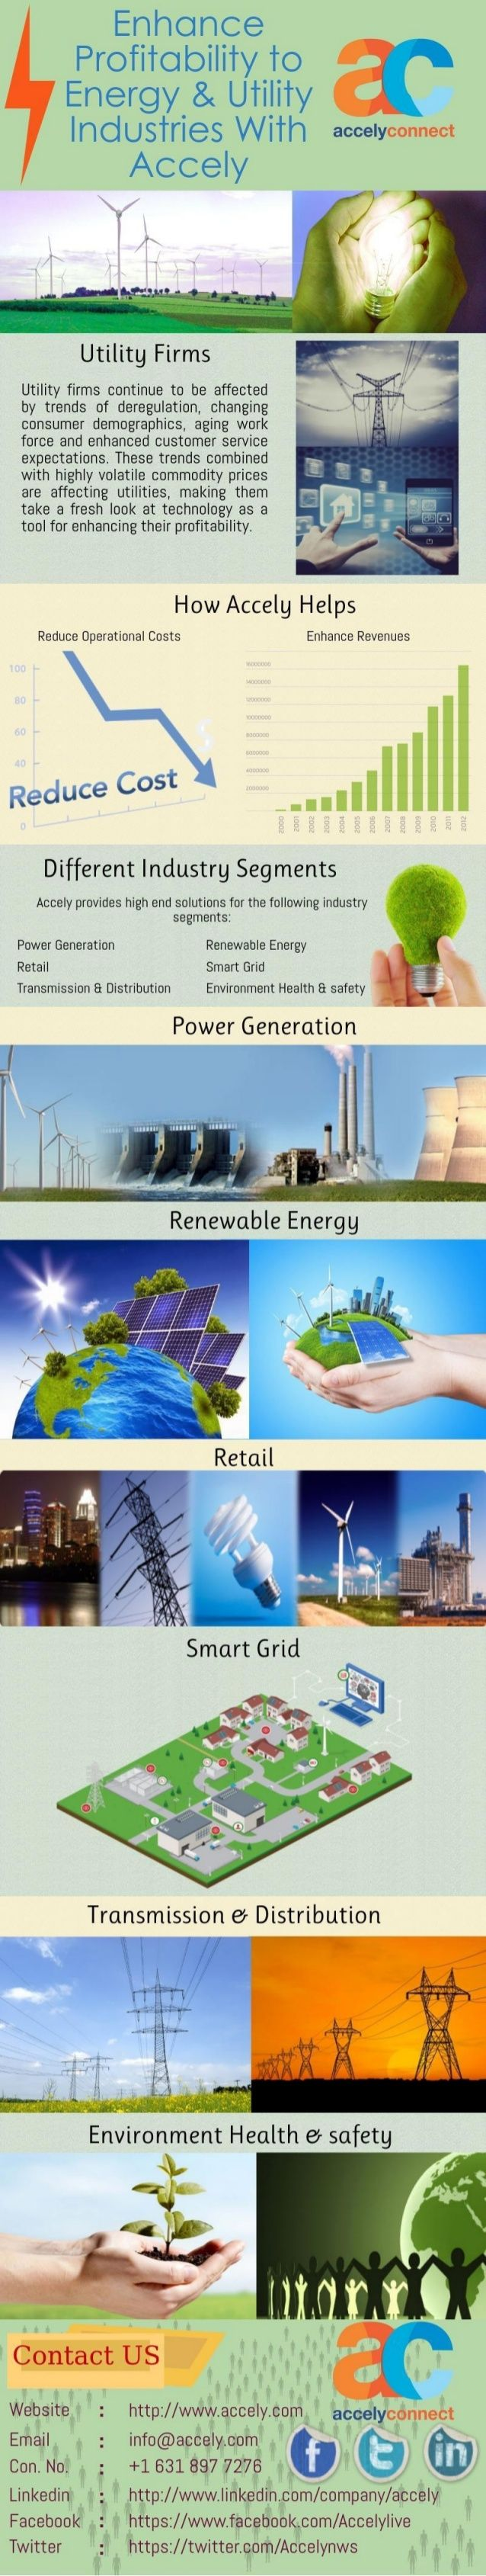 Enhance Profitability to Energy & Utility Industries With Accely